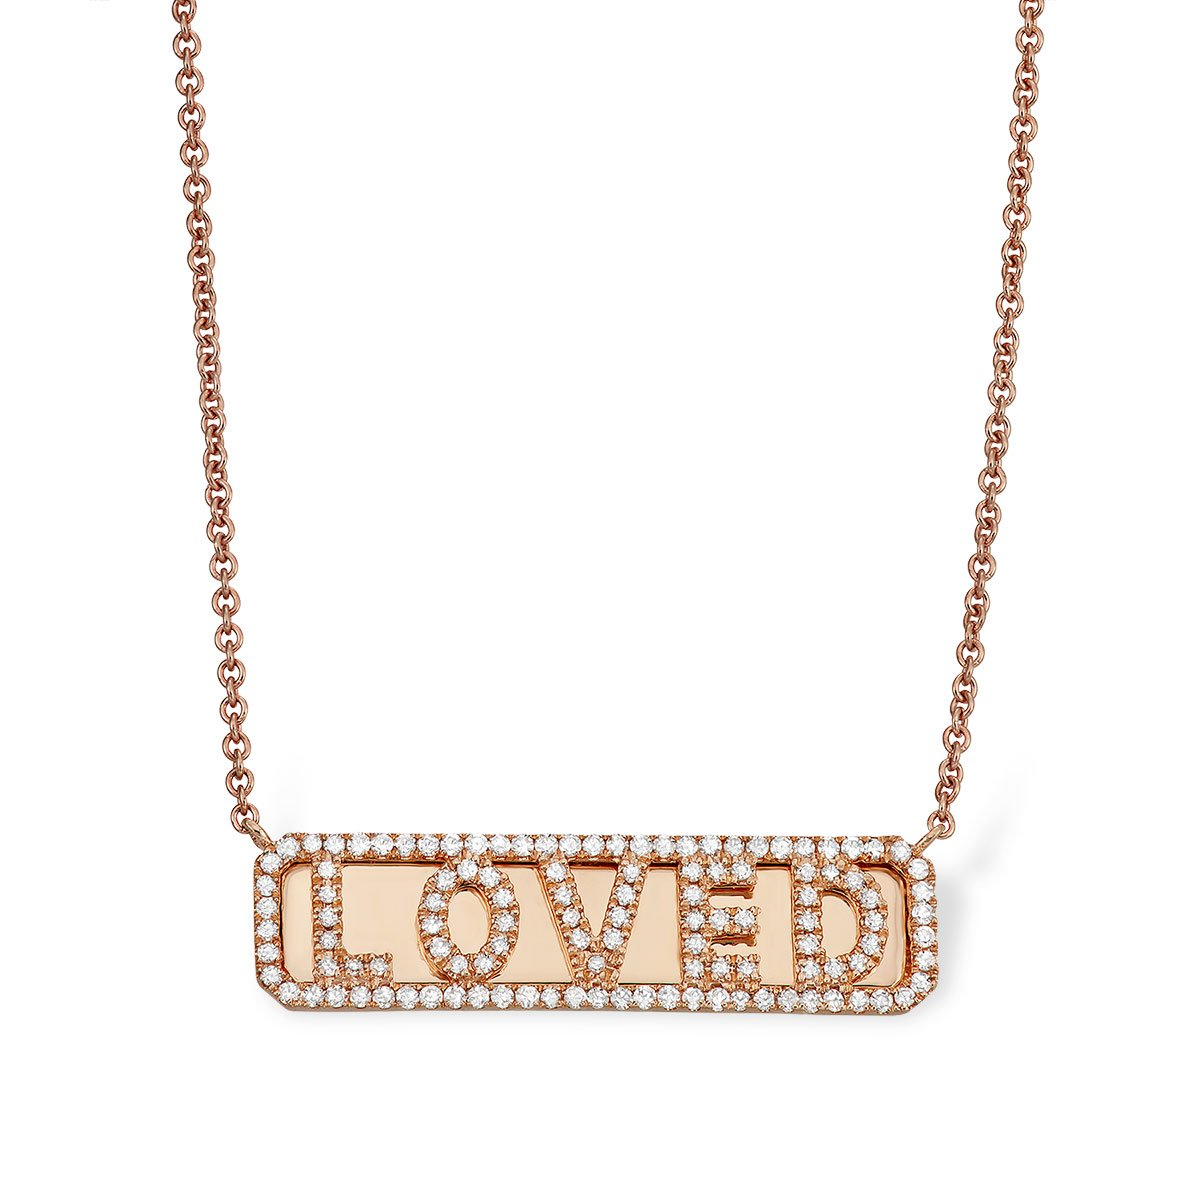 'Loved' ID Necklace - Serena Williams Jewelry